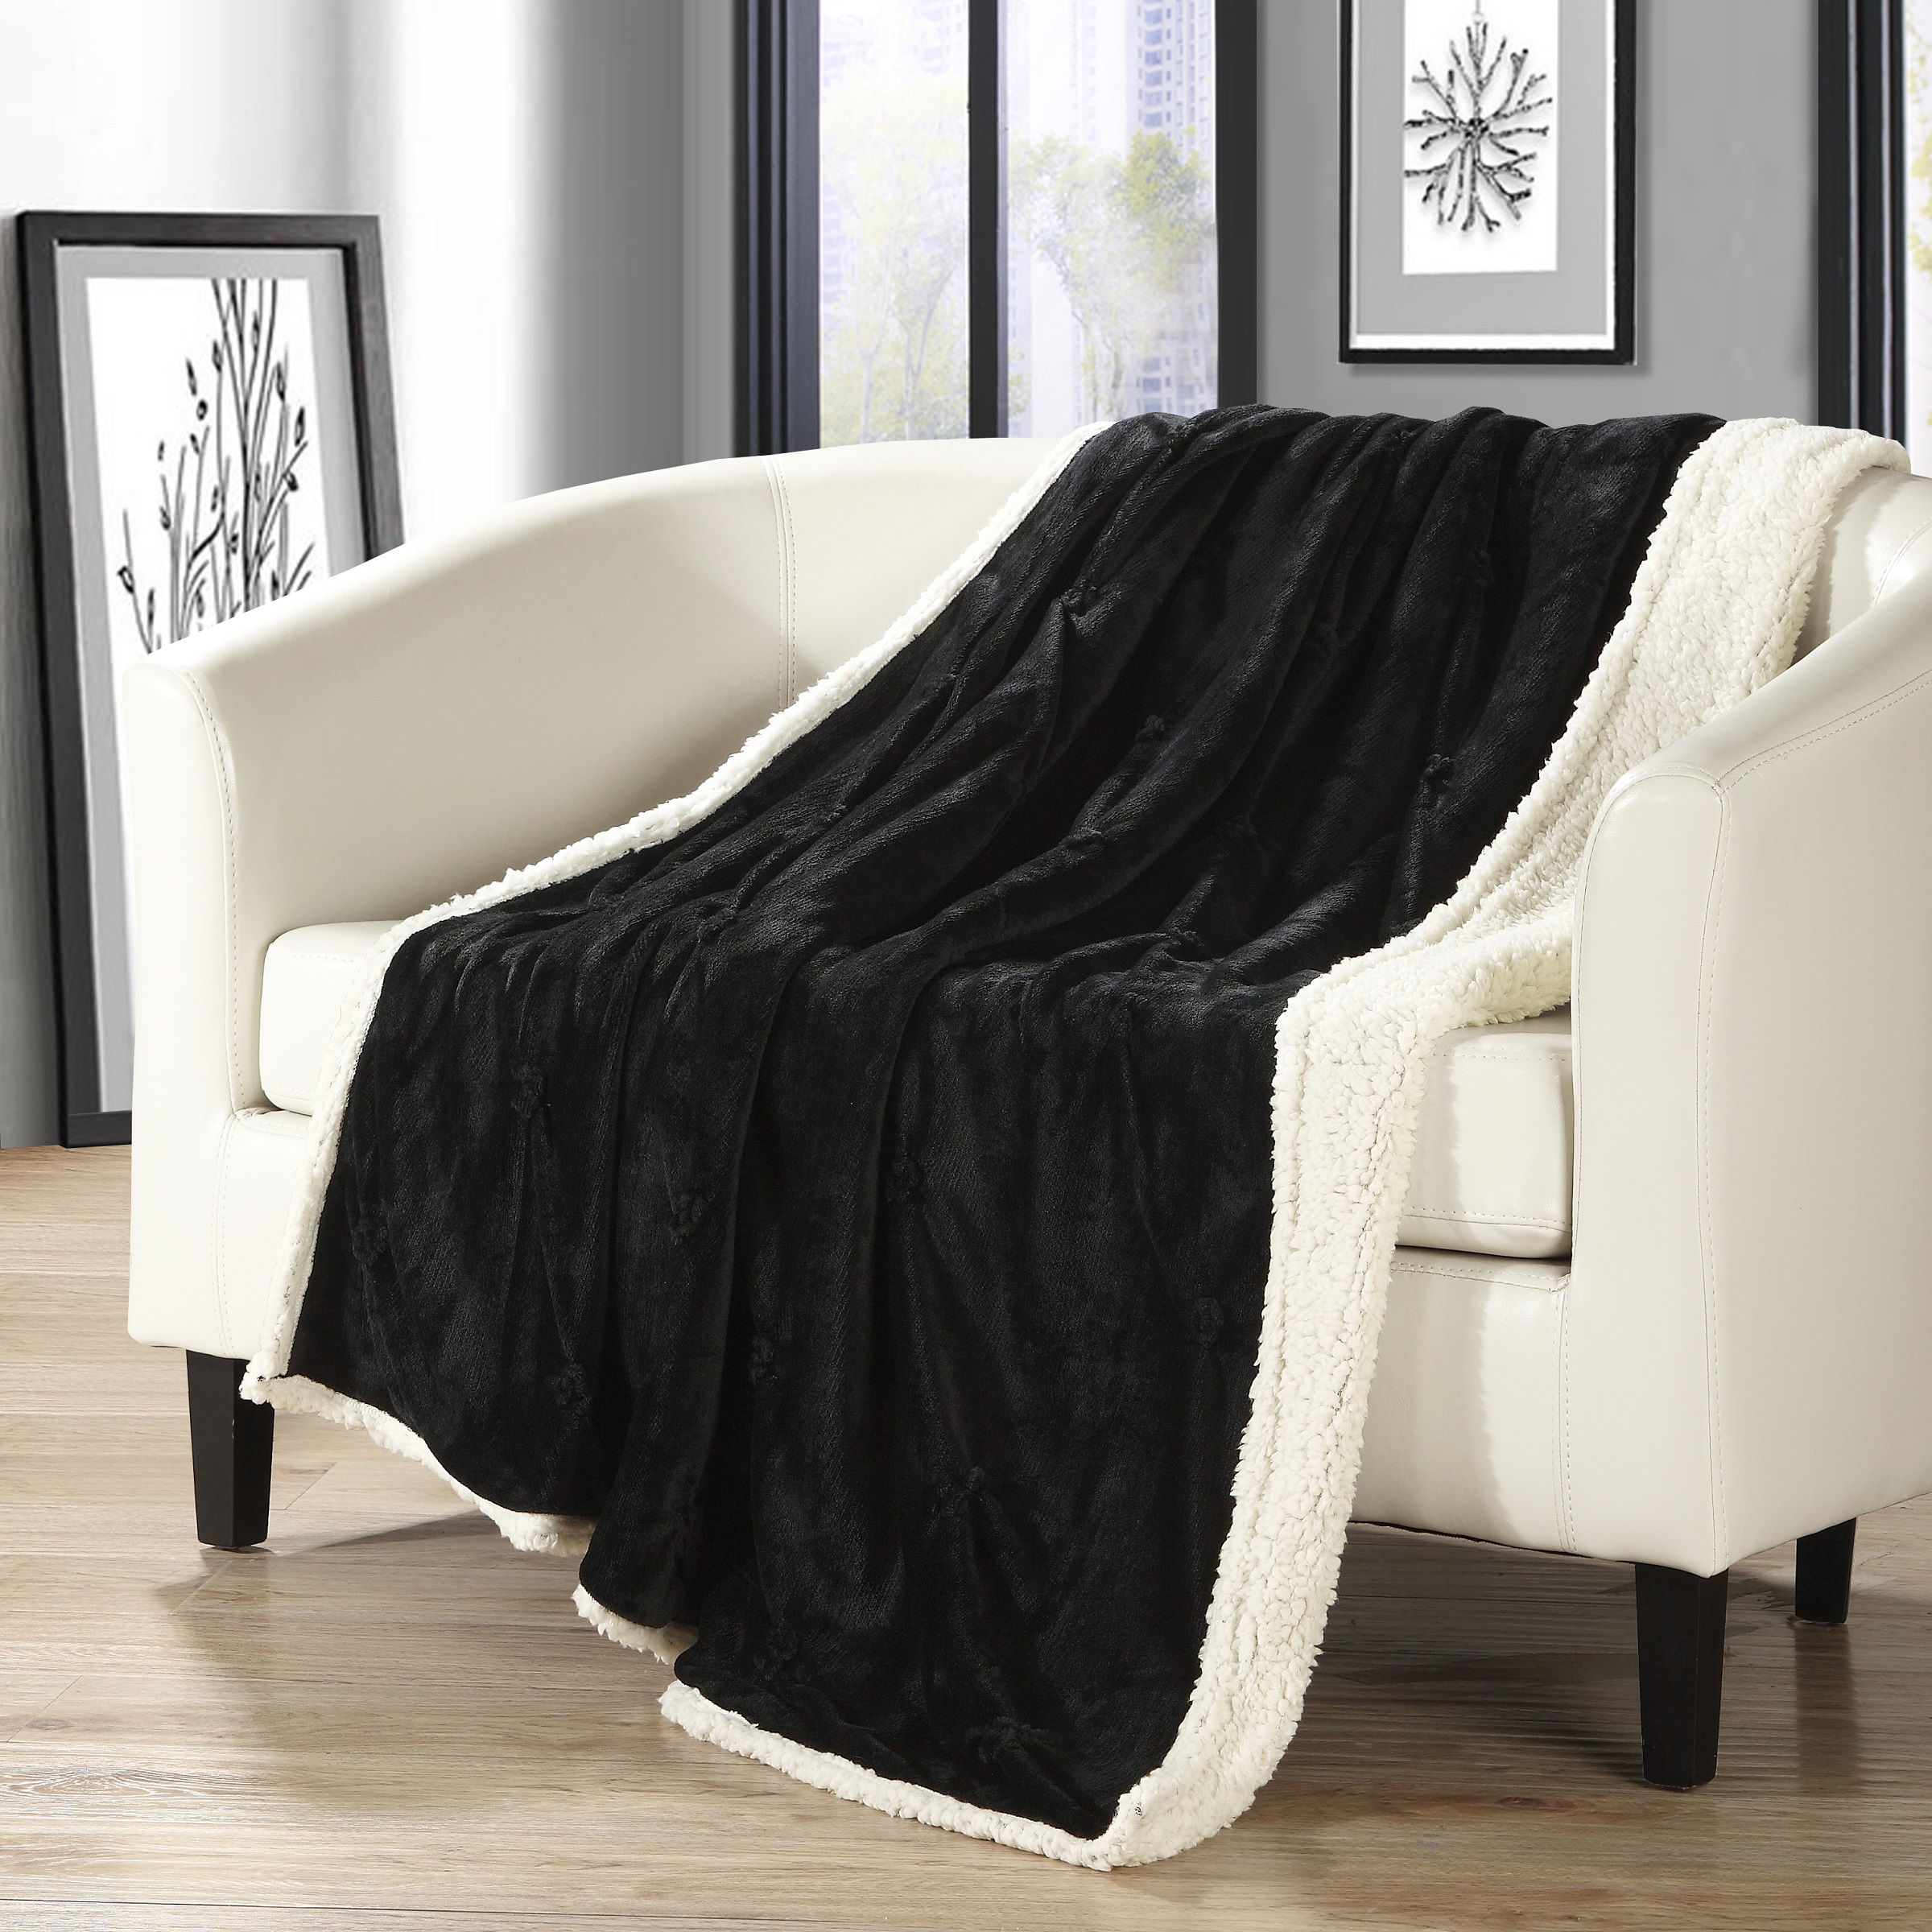 Chic Home 1-Piece Barbuda Pinch Pleated Throw Blanket Sherpa Blanket